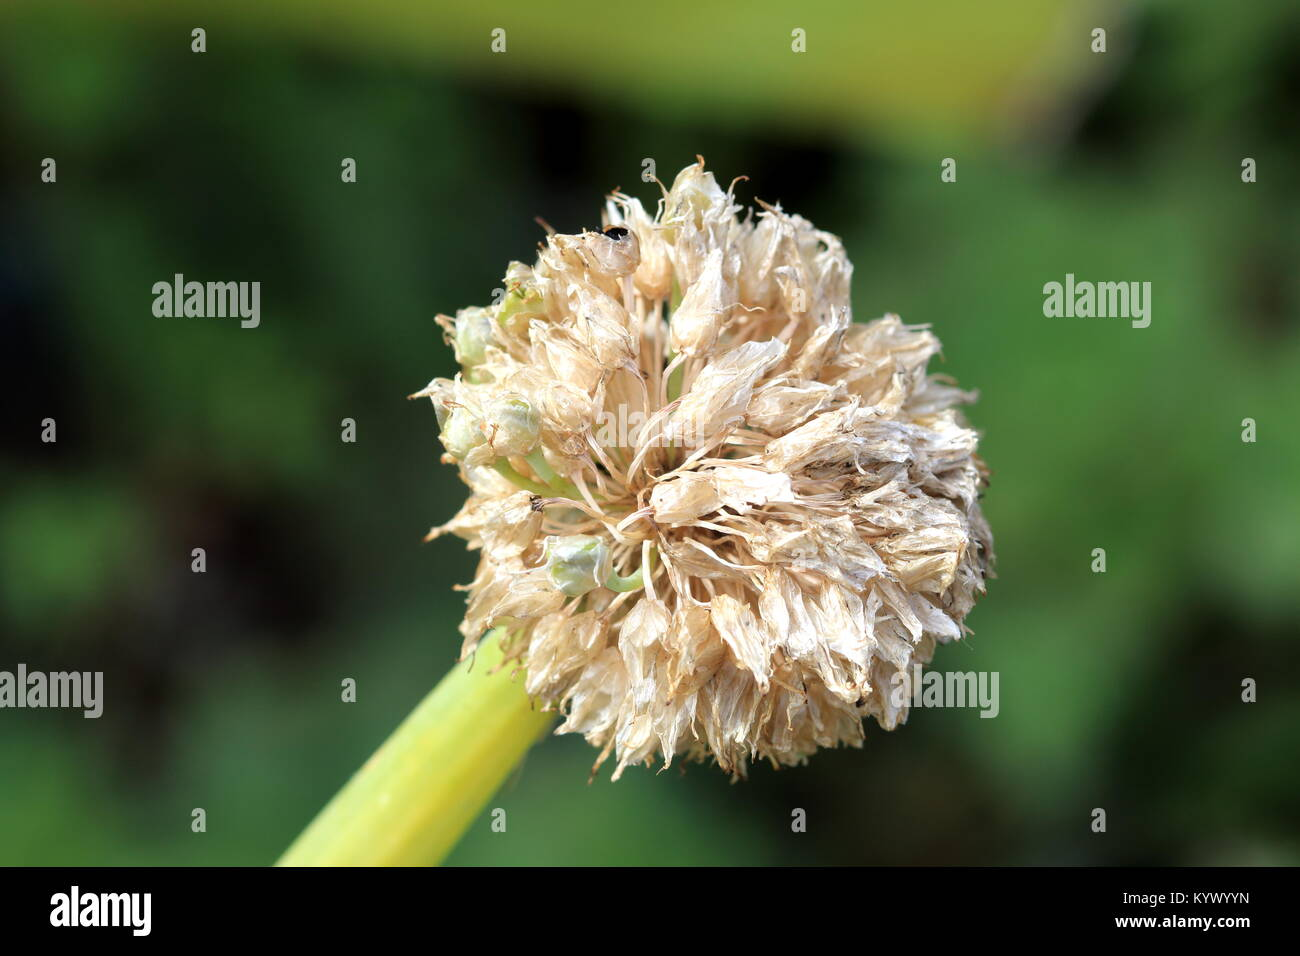 Drying Spring Onion Flower Stock Photos Drying Spring Onion Flower